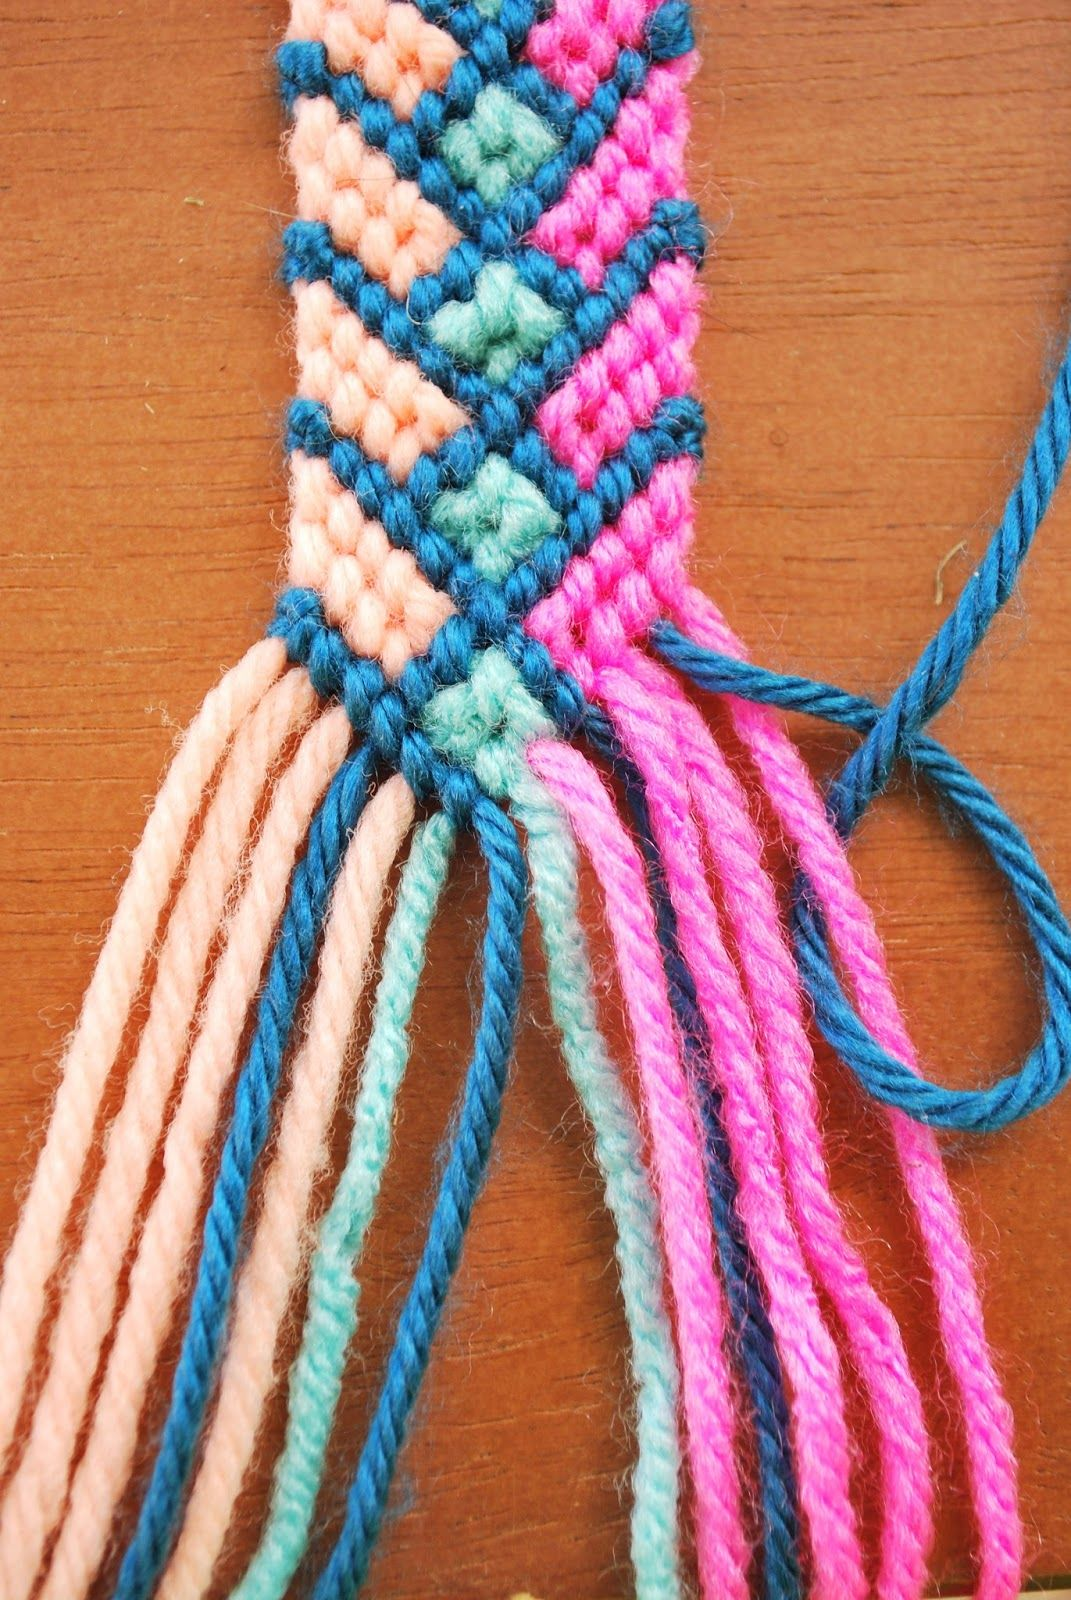 new simple my diy thread friendship embroidery tutorial growing diagonal stripe bracelet